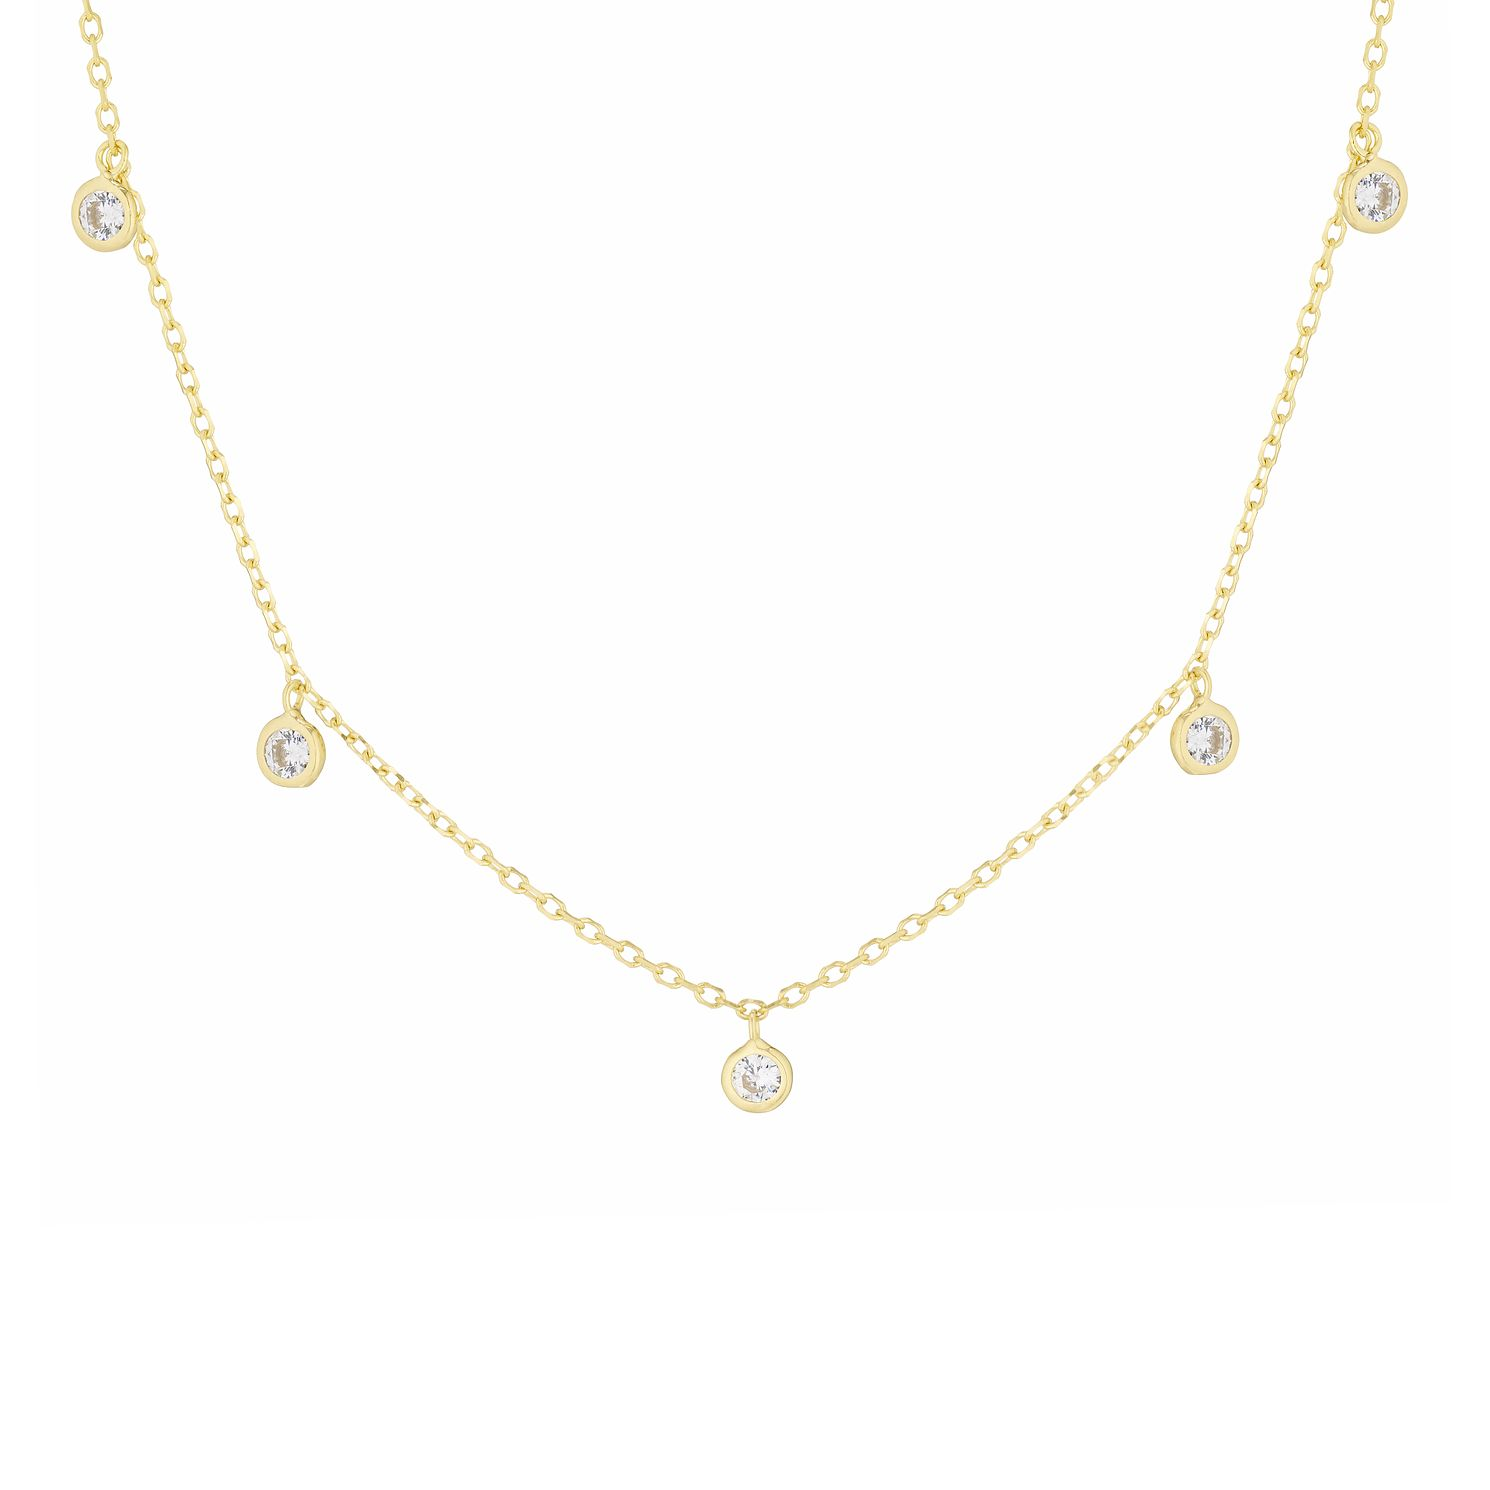 9ct Yellow Gold Cubic Zirconia Drop Necklace - Product number 3157431